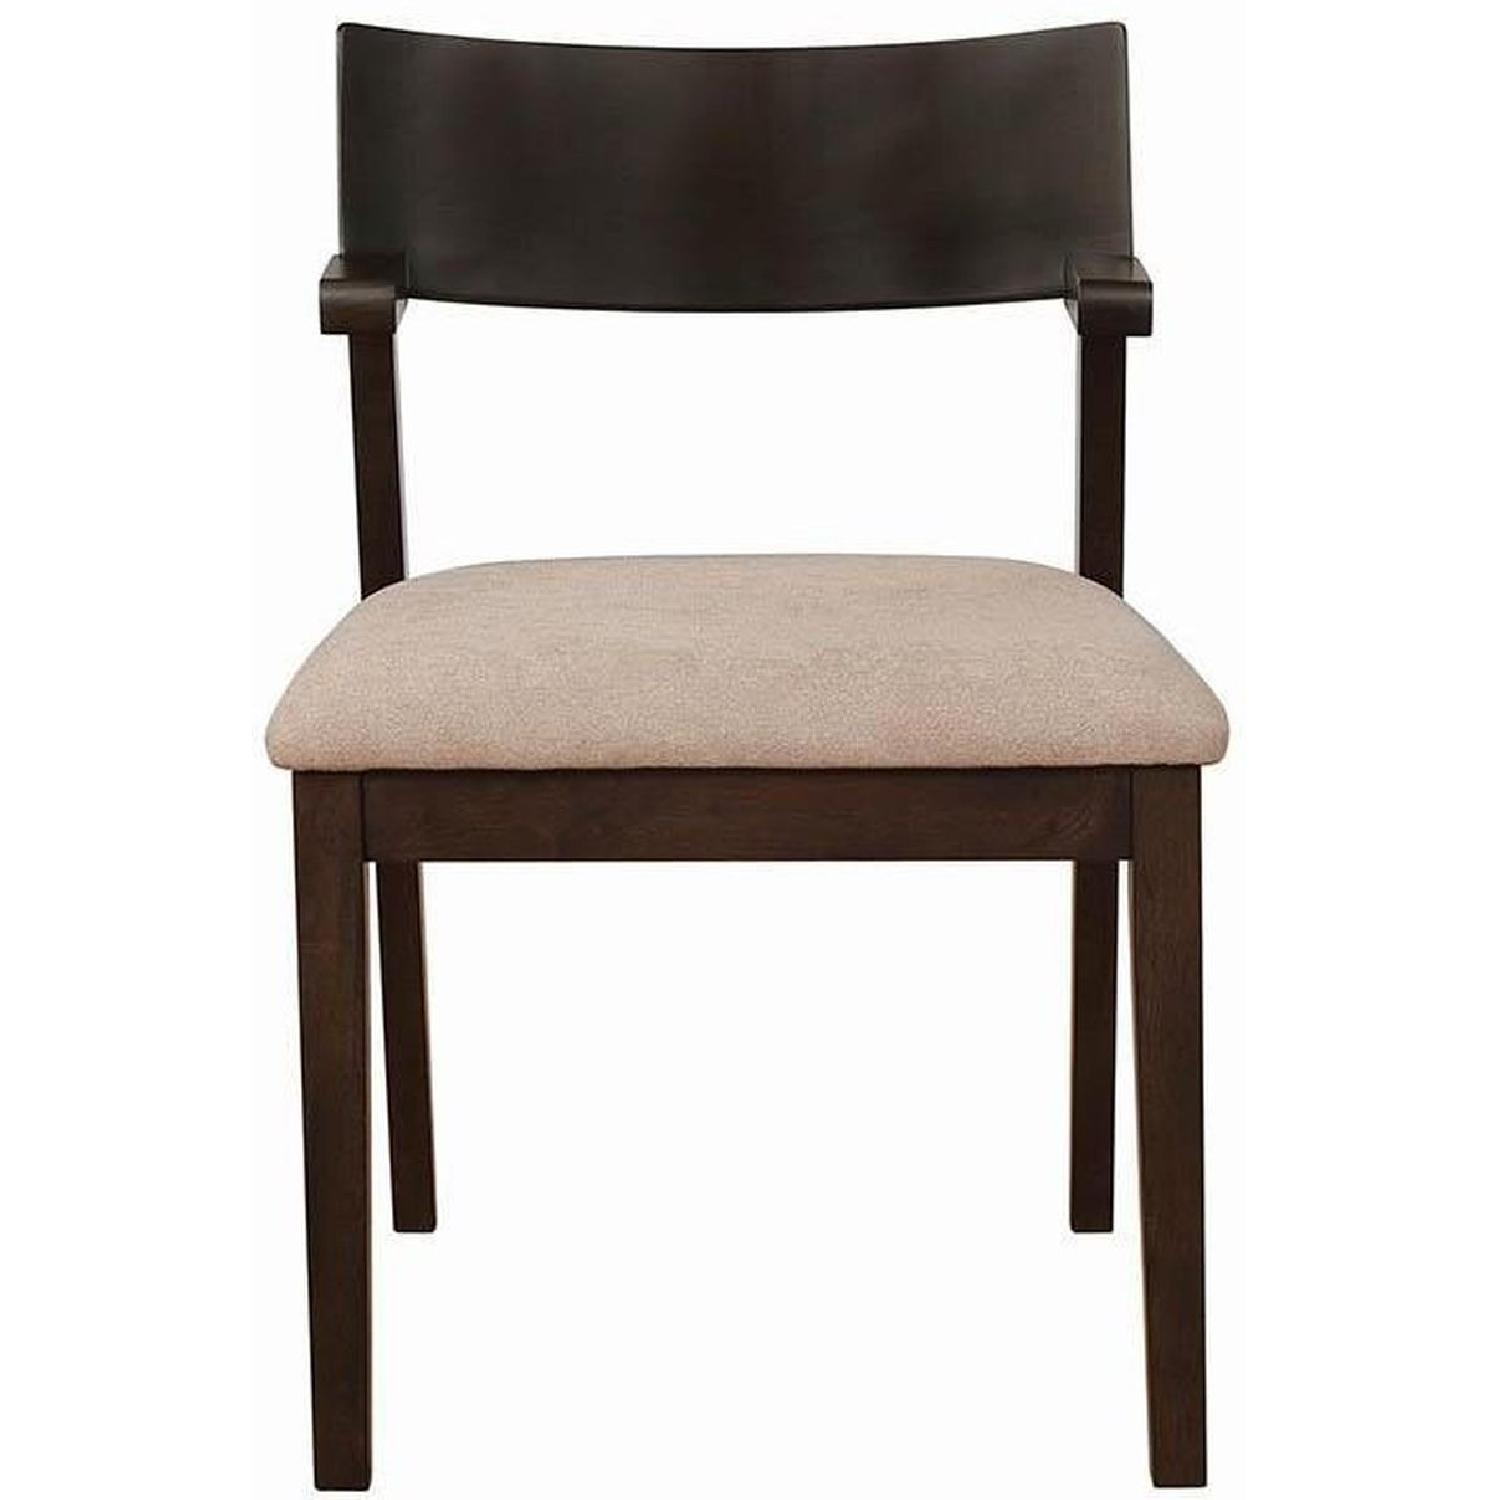 Mid Century Style Dining Chair w/ Light Brown Cushioned Seat - image-5